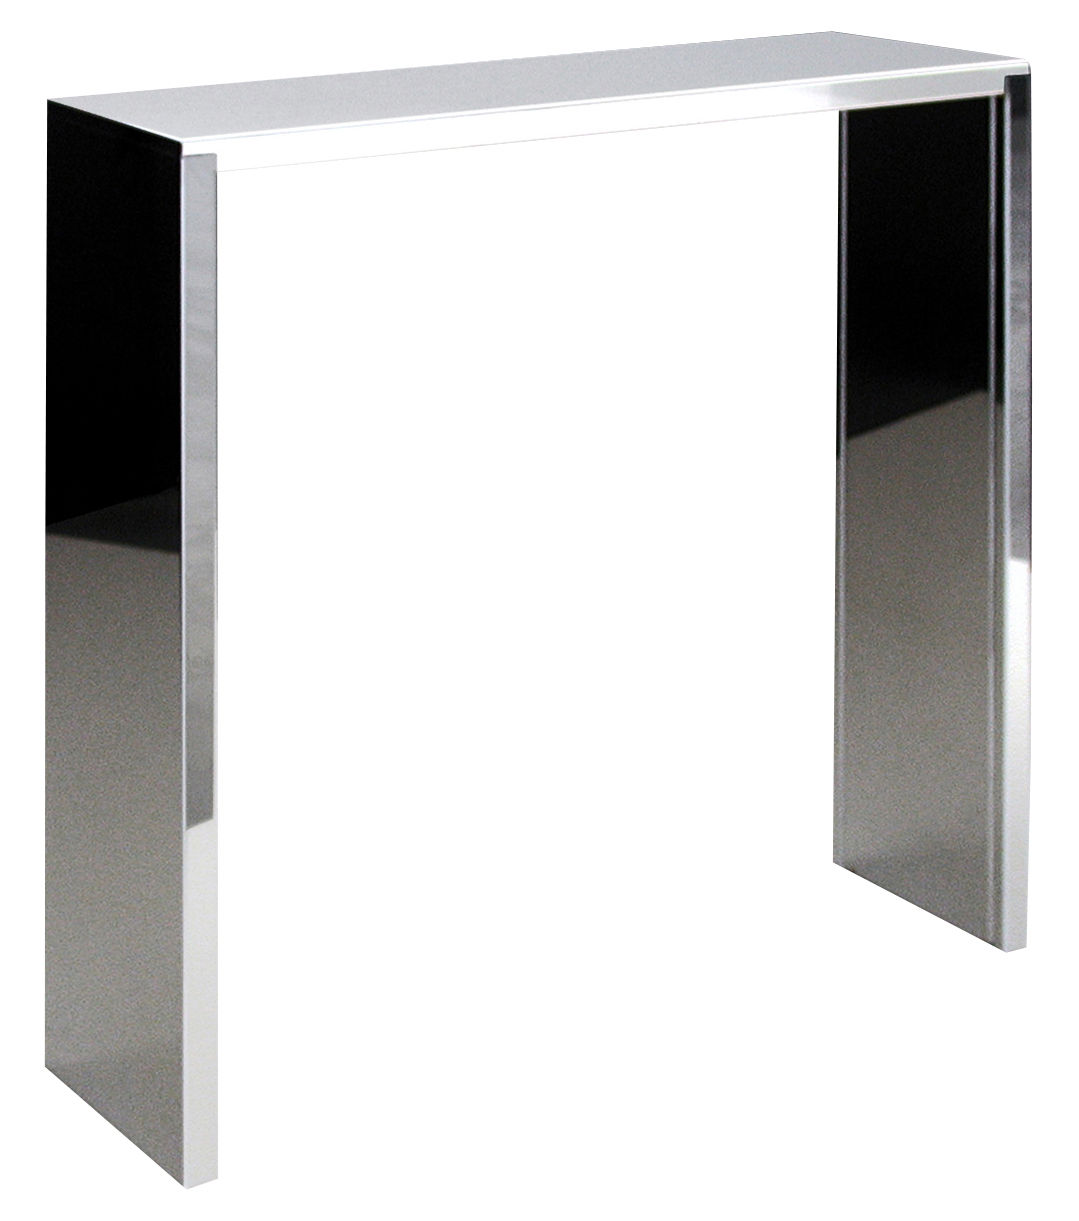 console inox high console miroir l 100 x prof 28 x h 100 cm zeus. Black Bedroom Furniture Sets. Home Design Ideas